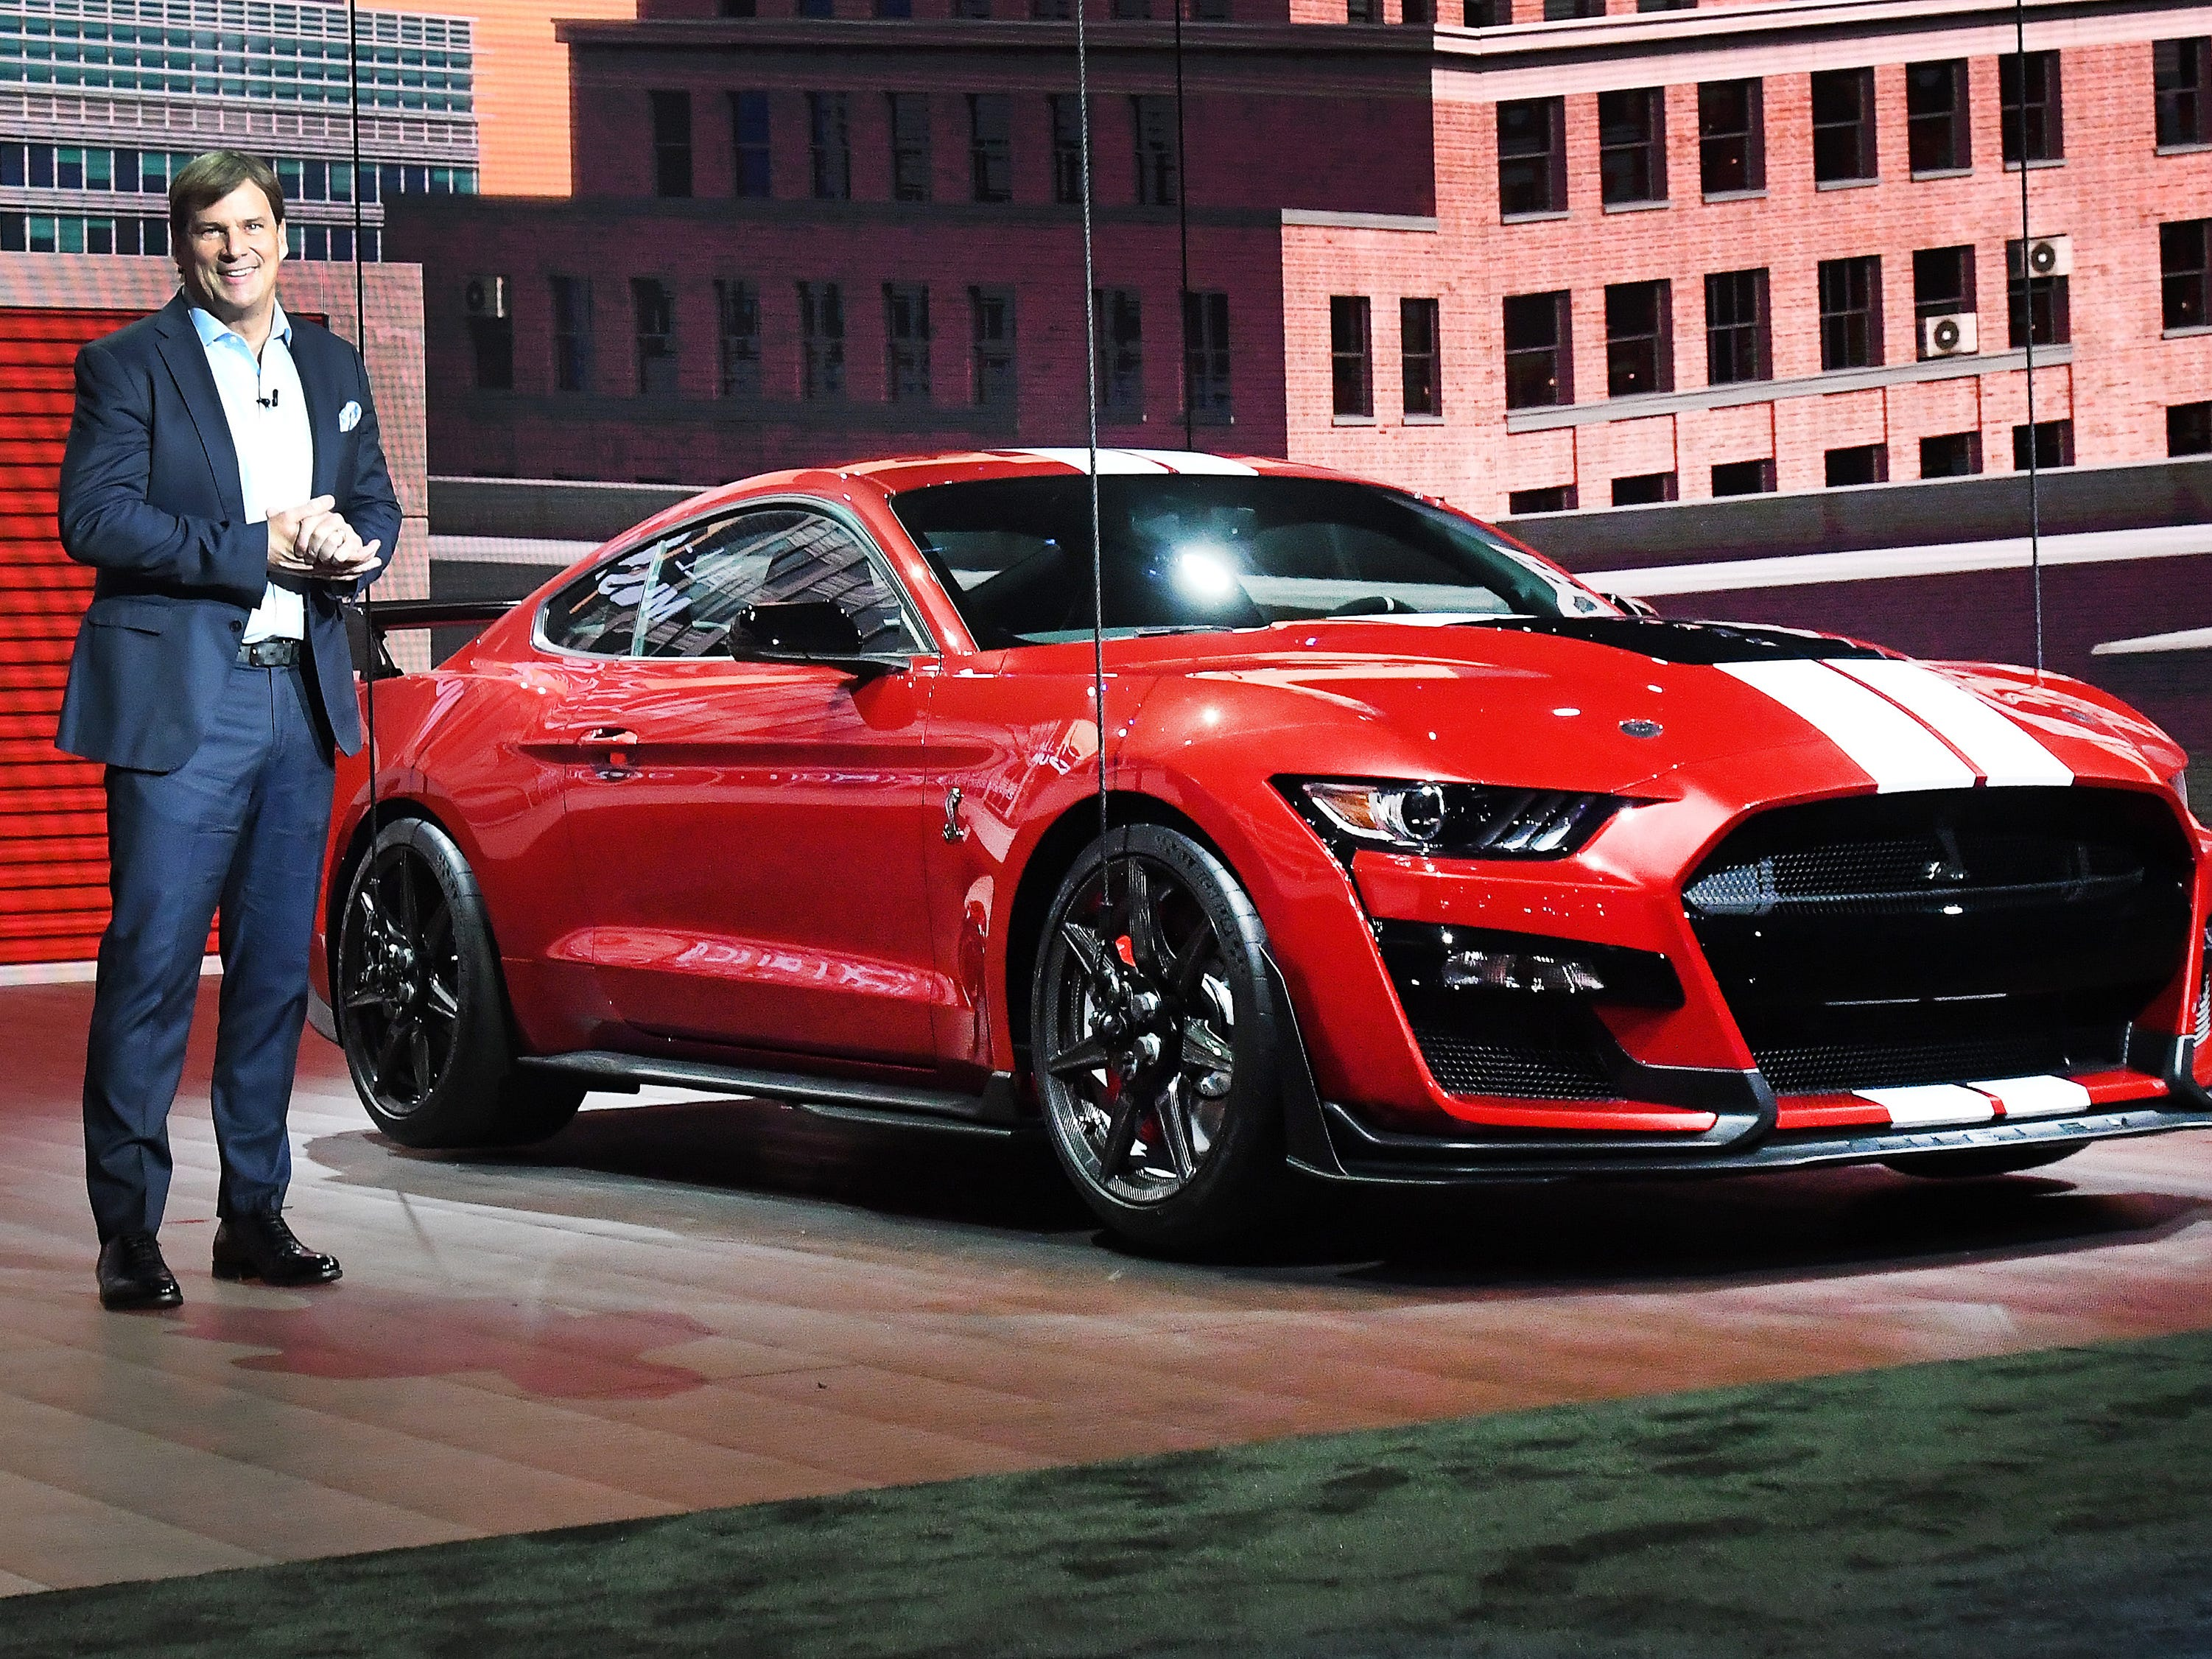 Ford executive Jim Farley introduces the Mustang GT500 at the Detroit auto show.